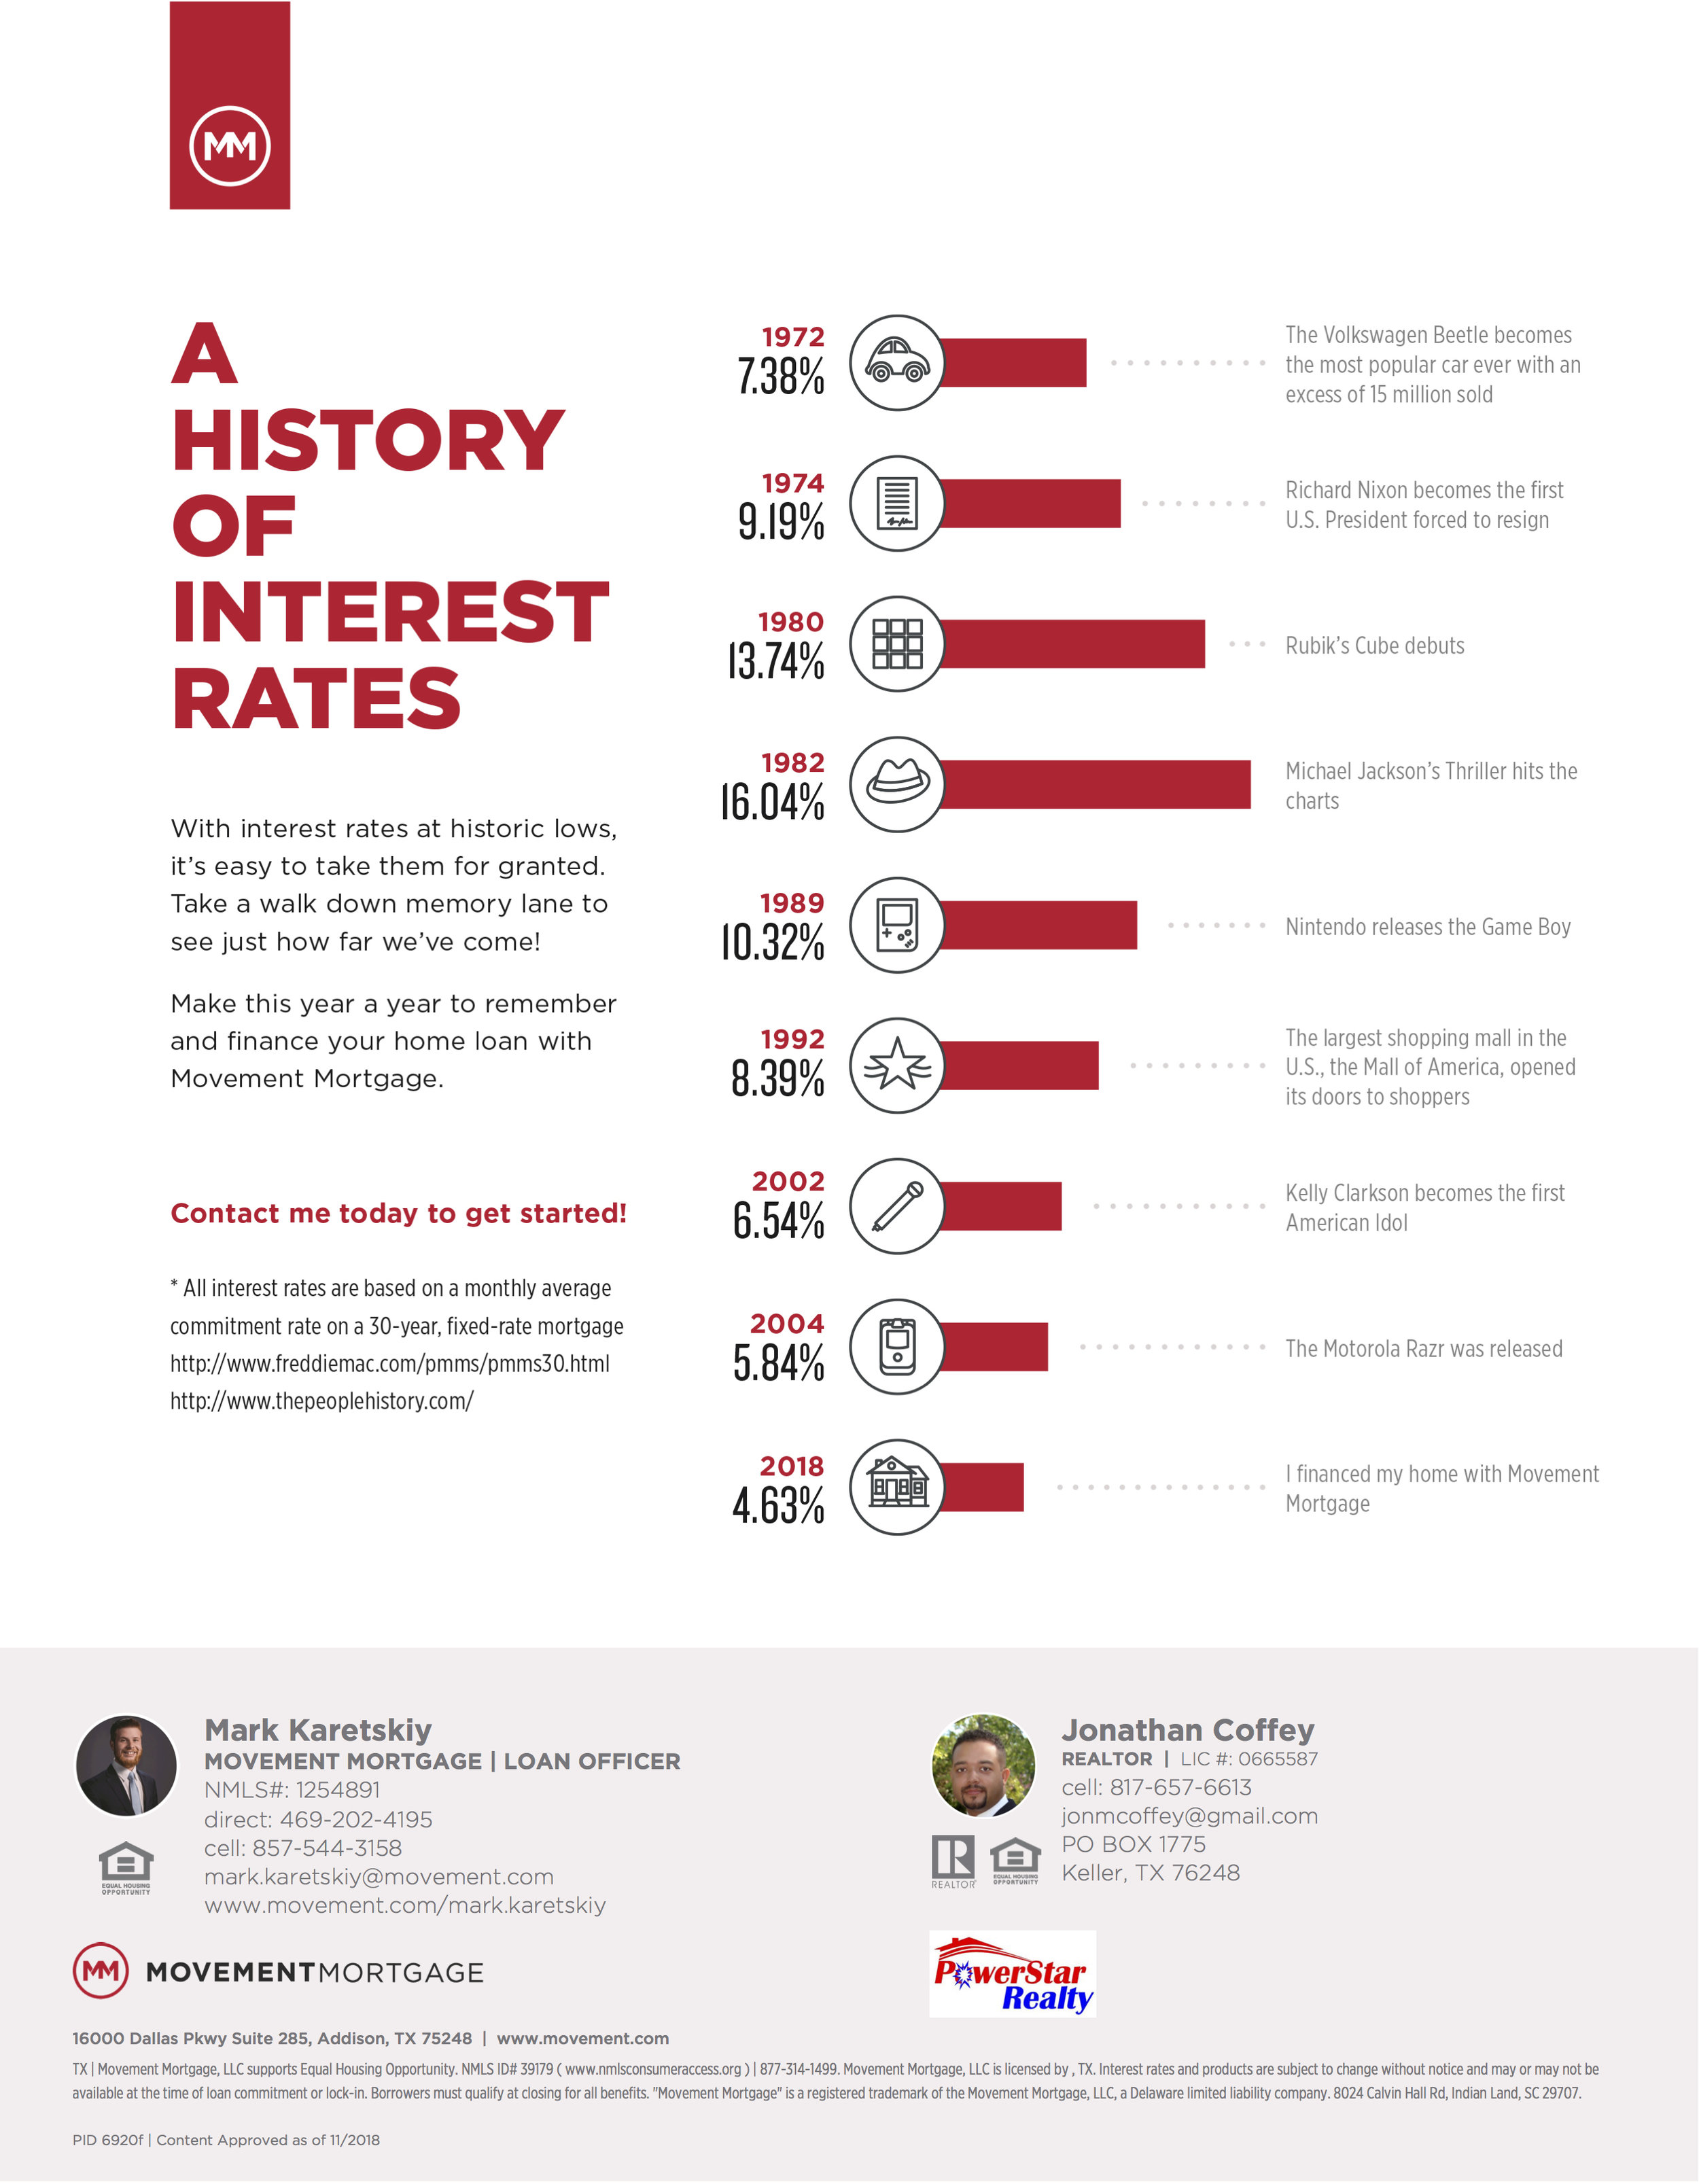 history of interest rates.jpg